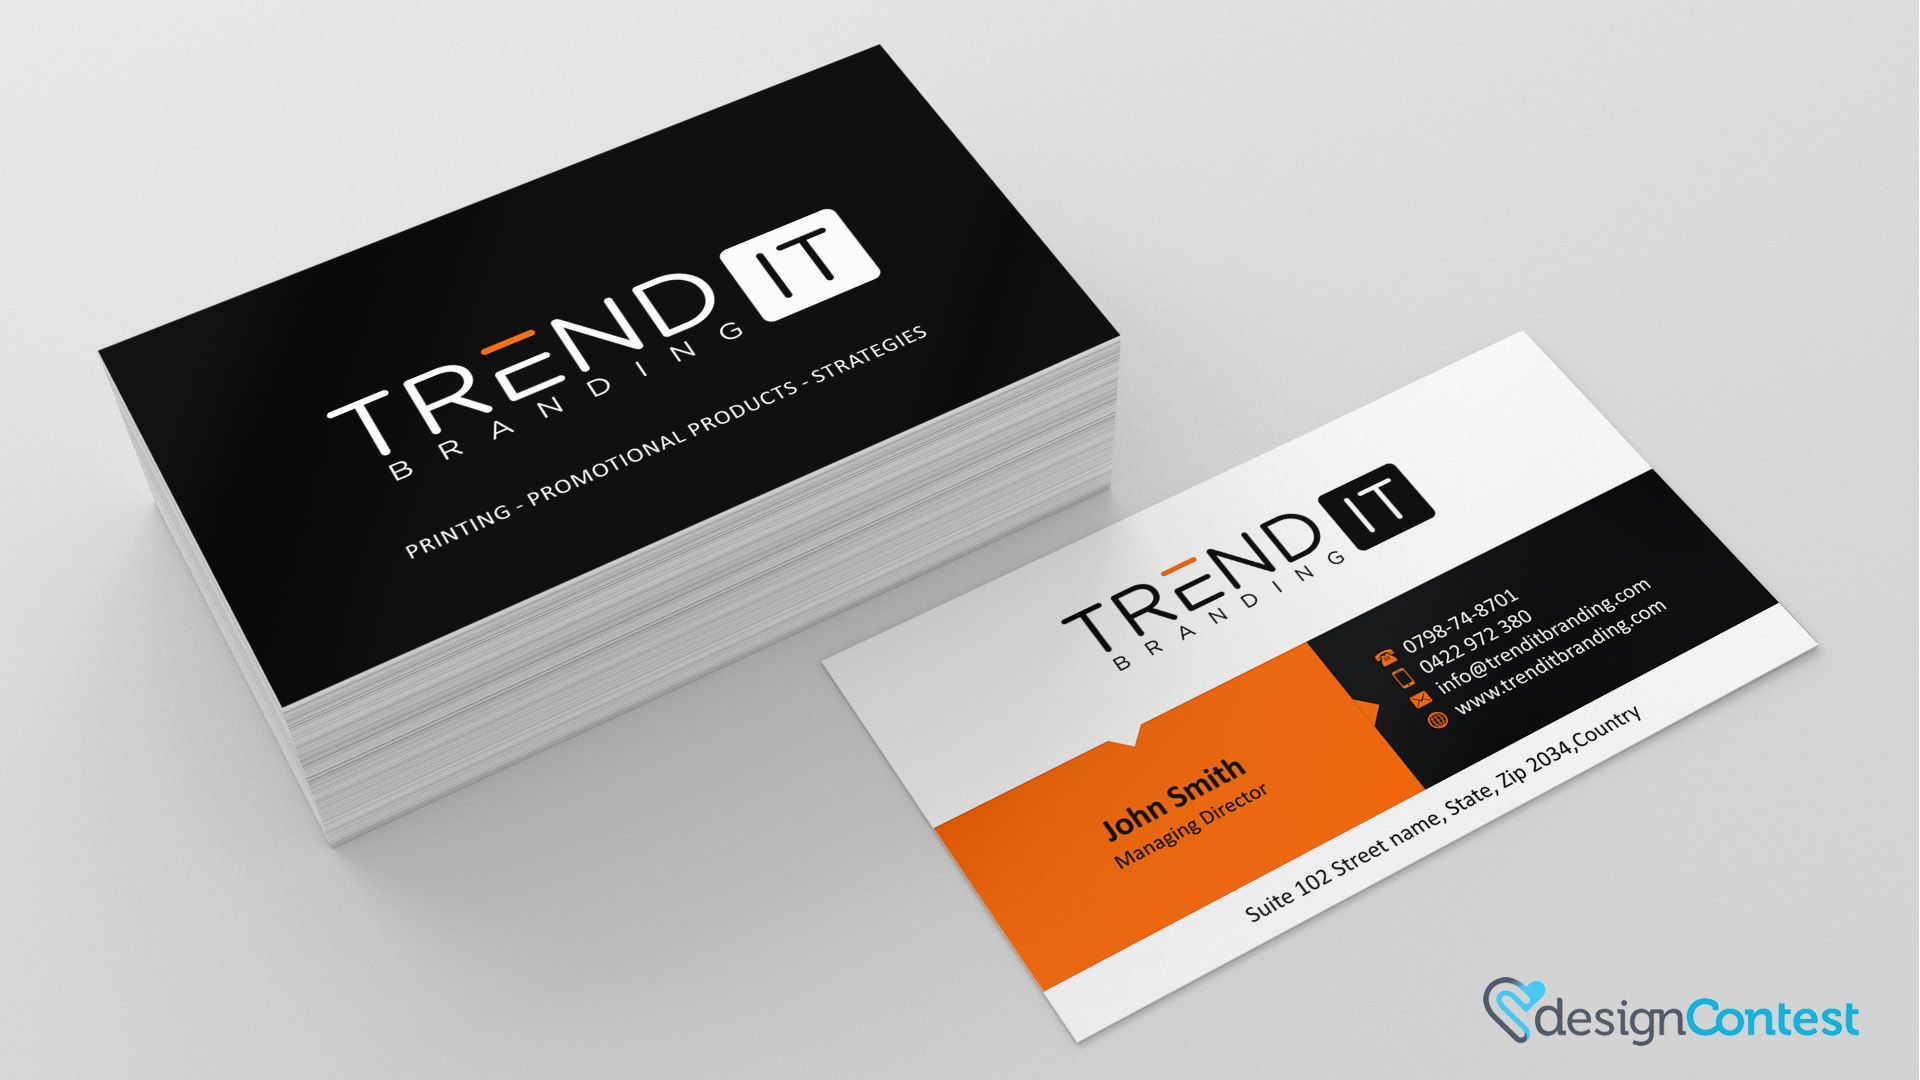 rajagee business card design with designcontest 2 1920×1080